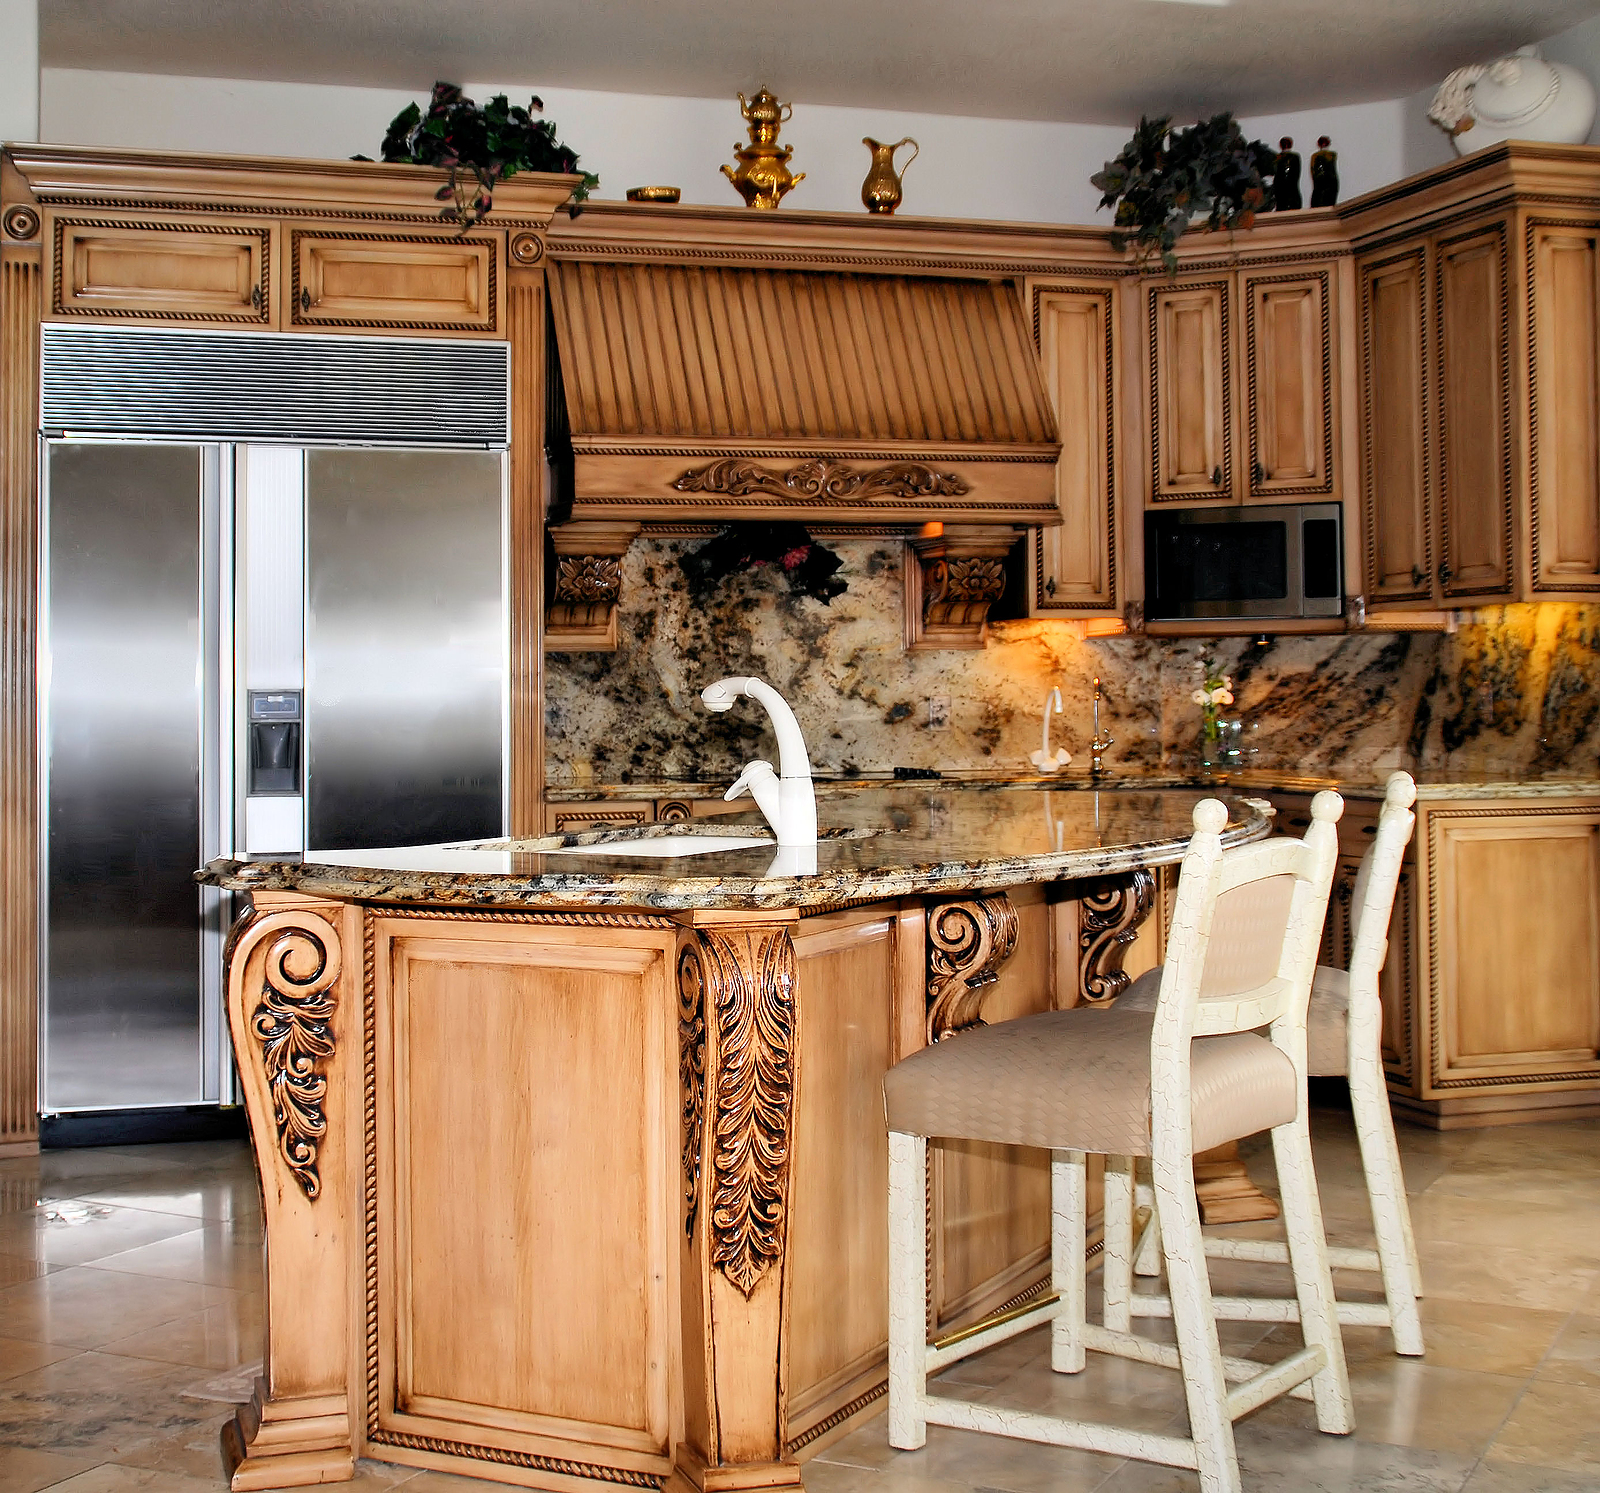 Kitchen Modeling Ideas Of Donco Designs Is A Pompano Beach Remodeling Contractor